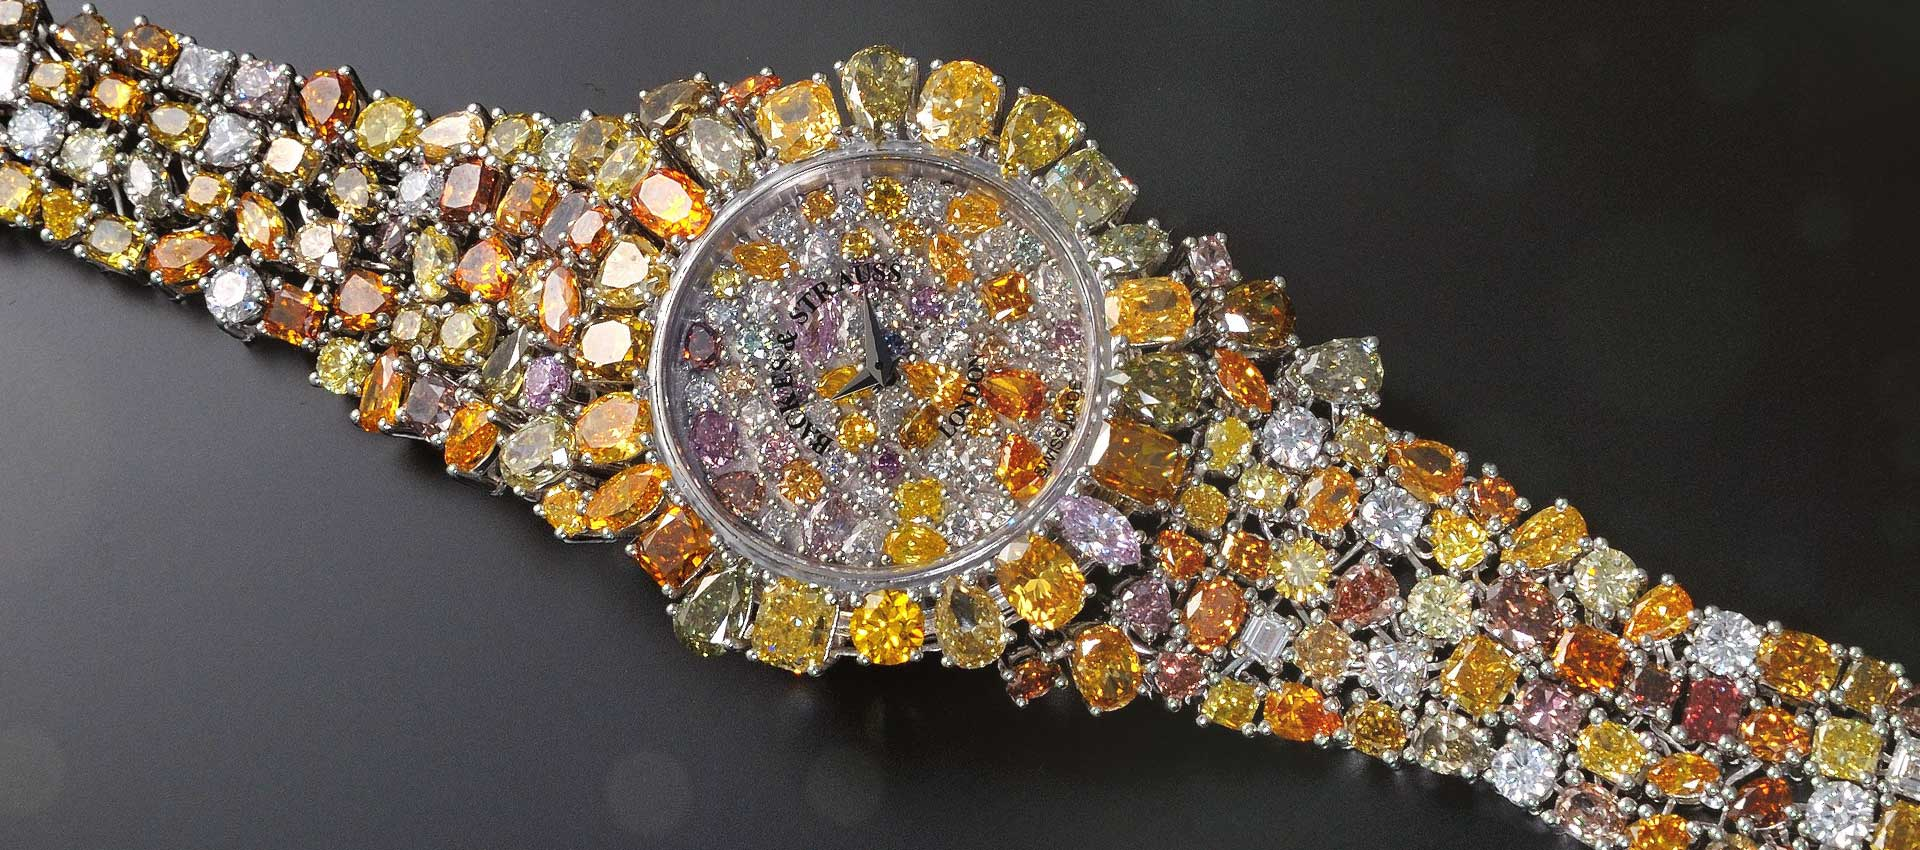 Piccadilly Princess Royal colours masterpiece watch for her